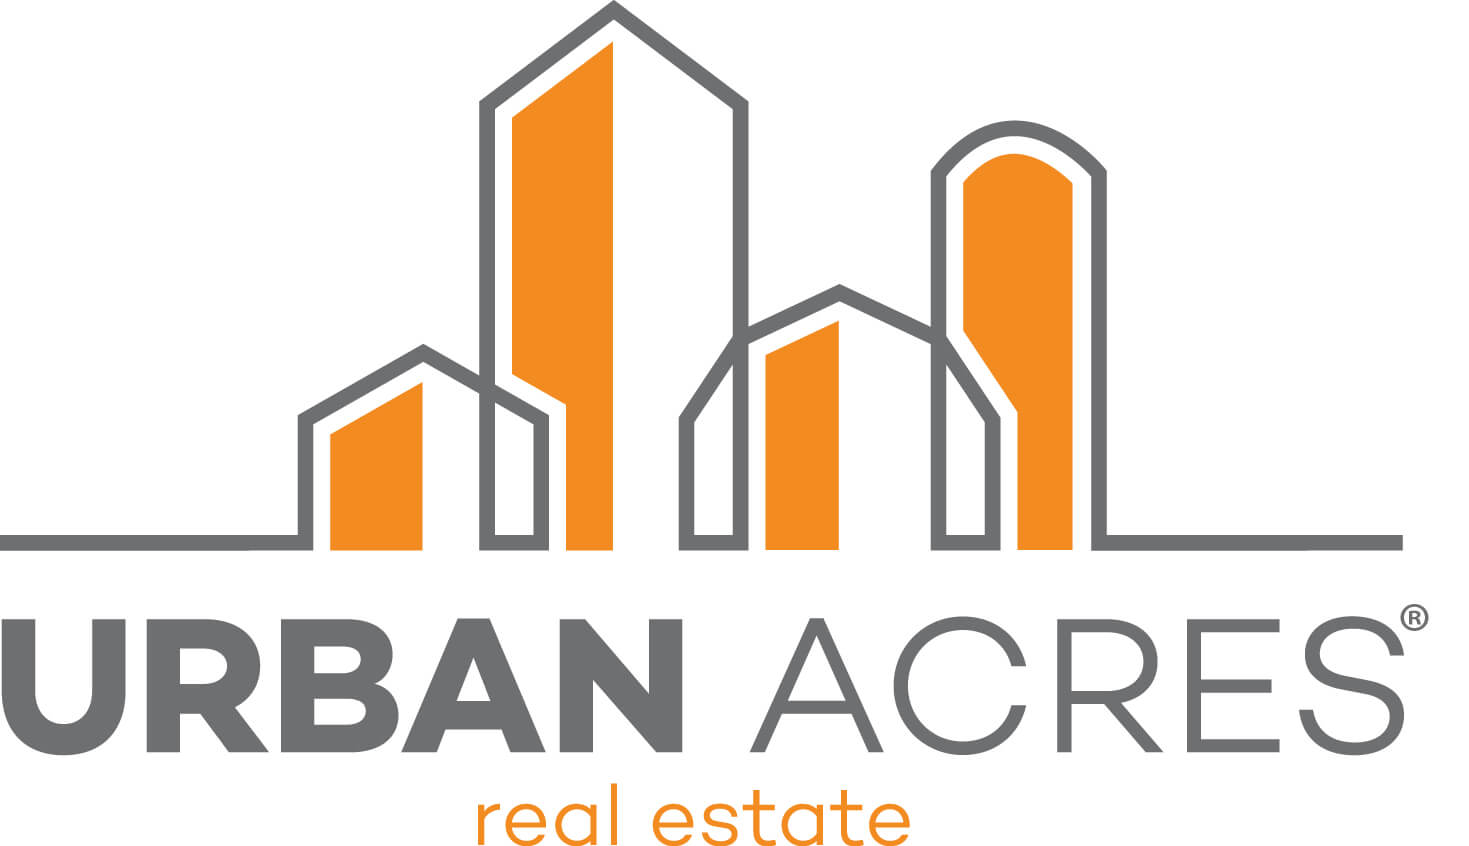 Urban Acres Real Estate